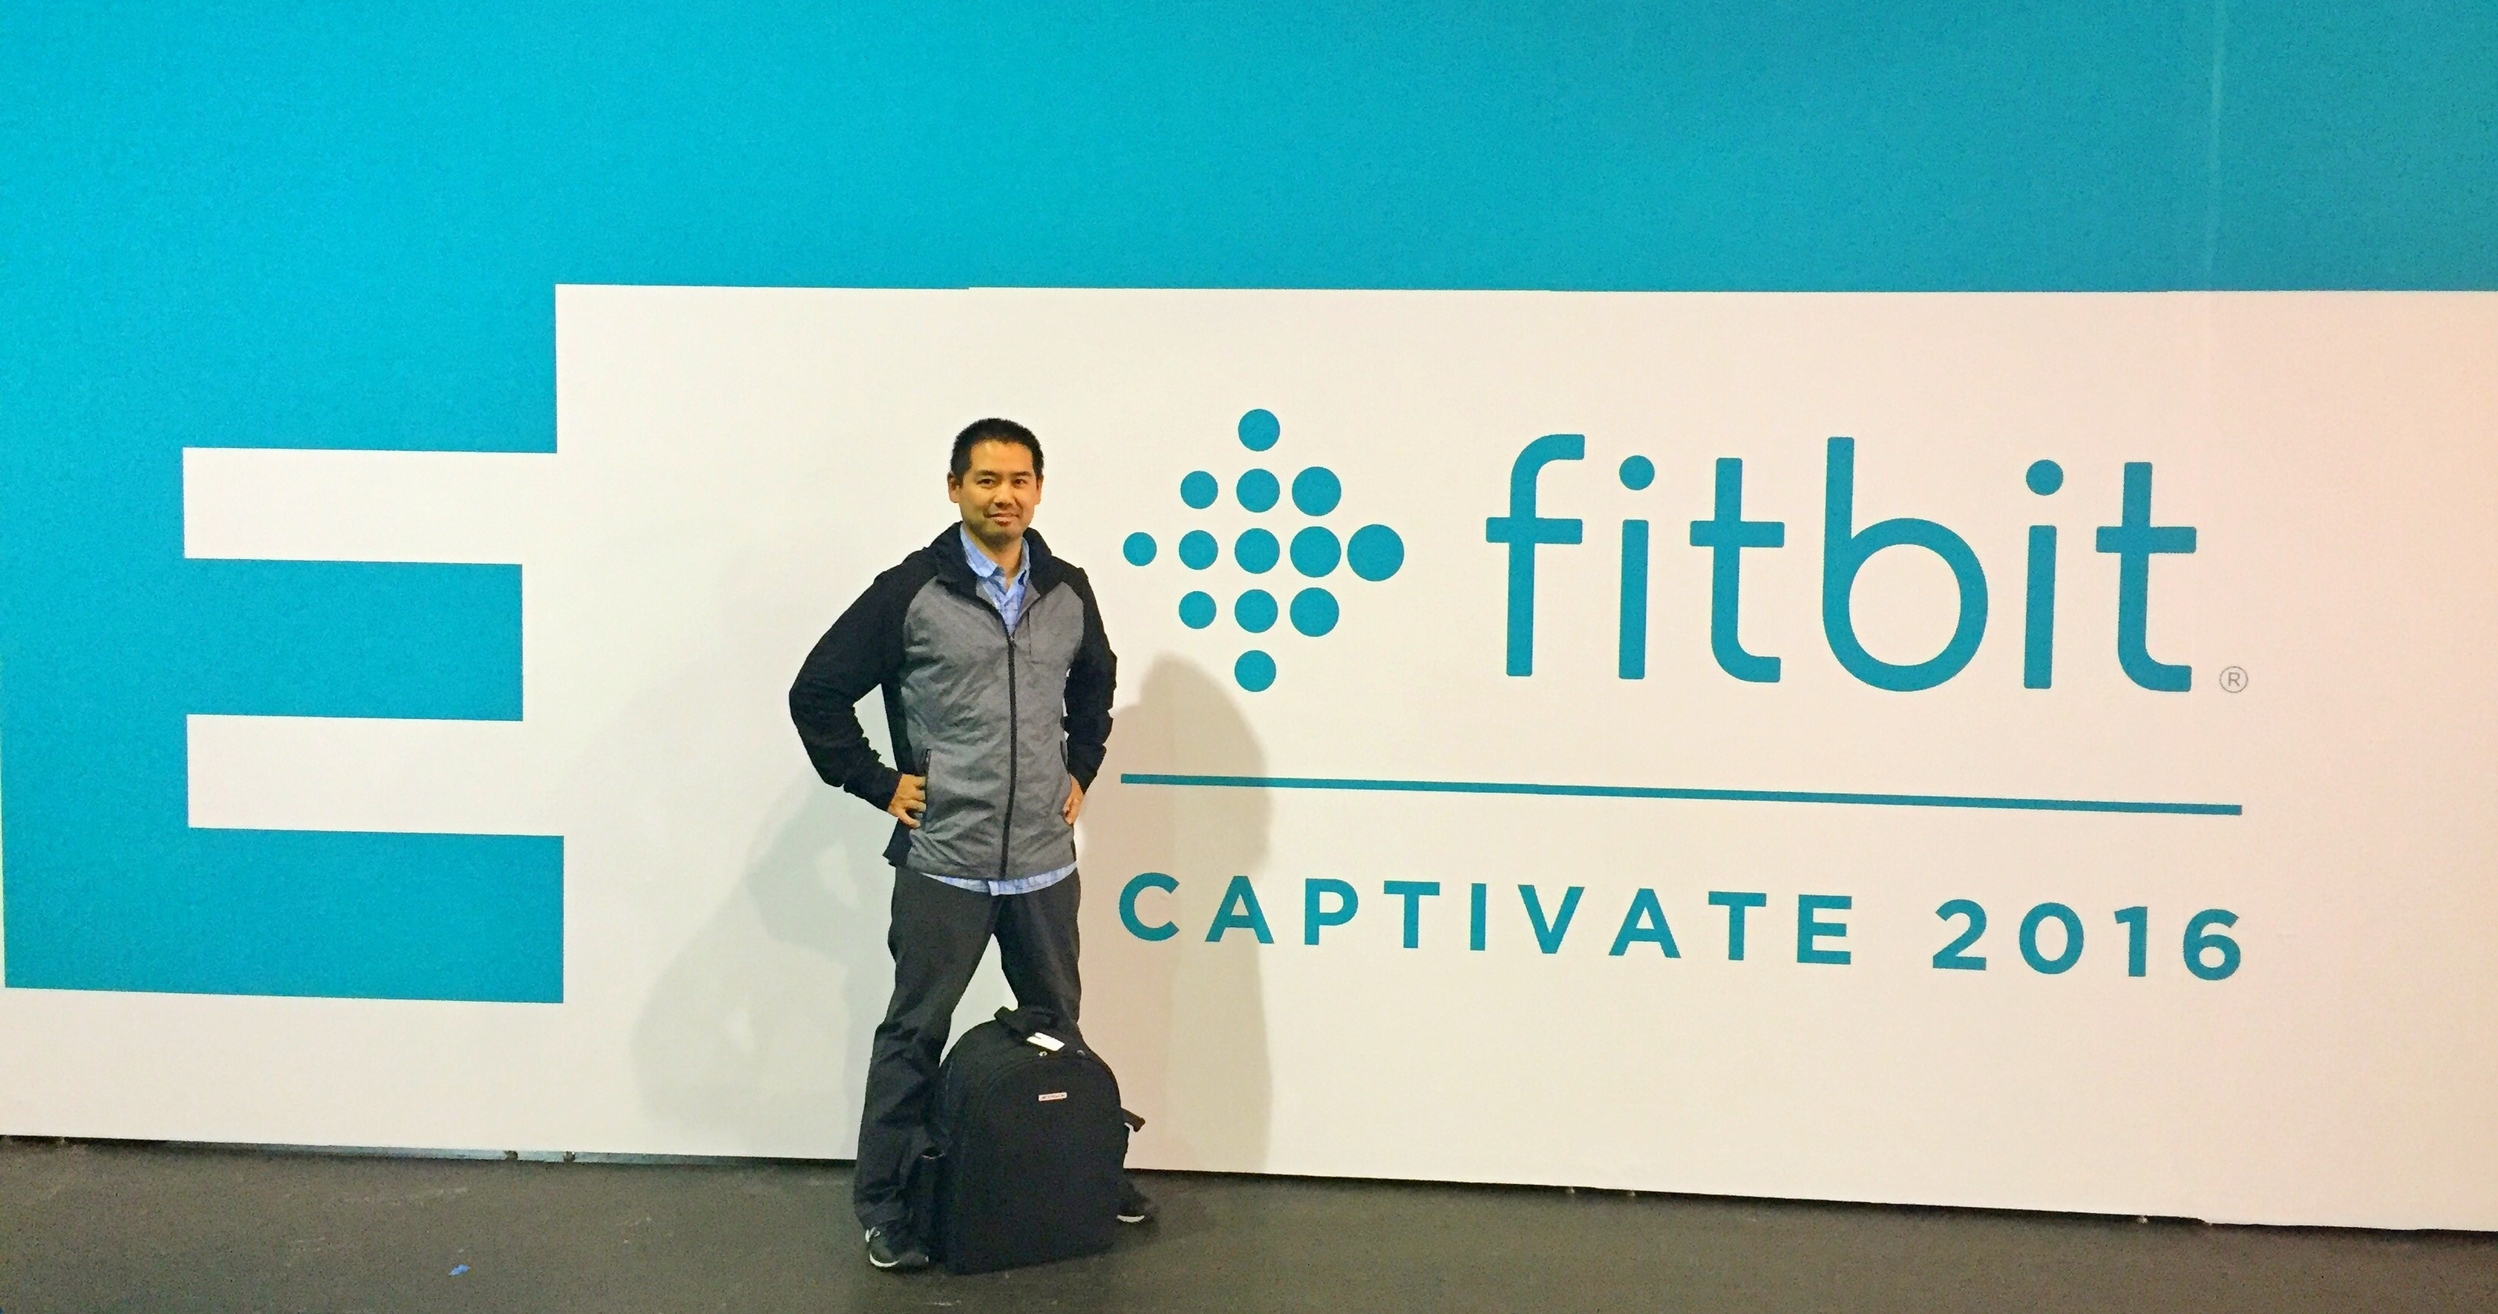 San Diego DJ Justin Kanoya gets ready to DJ at the Fitbit Captivate Summit 2016.